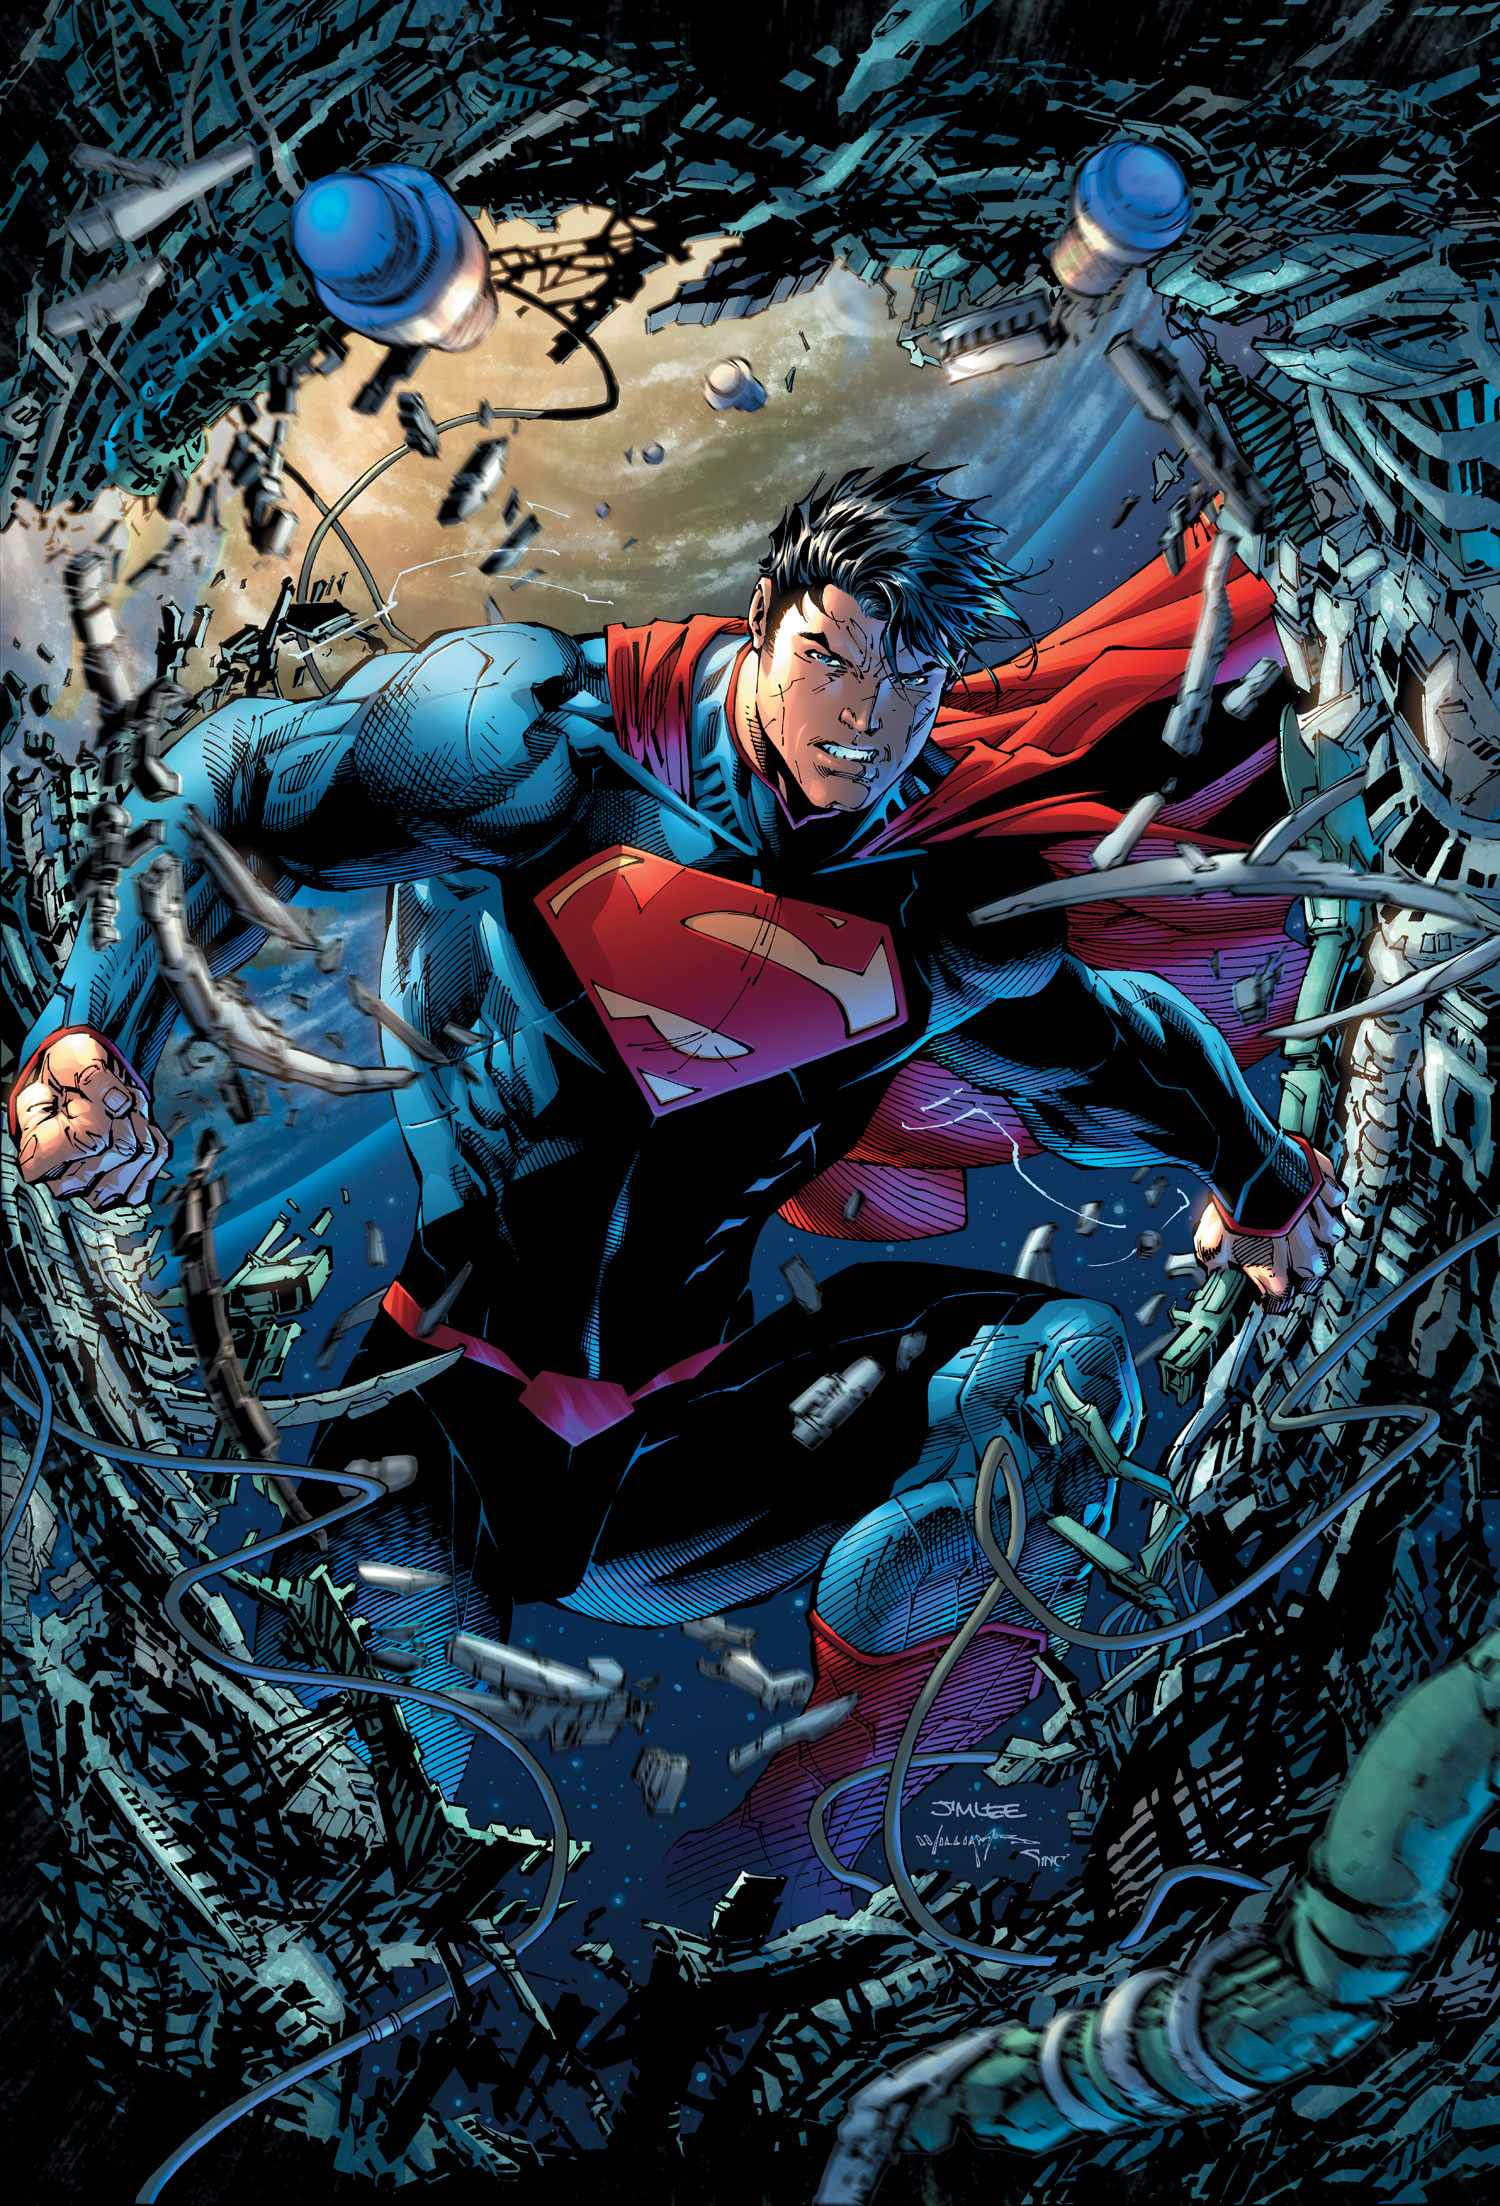 Book Cover Art Database : Superman unchained vol dc comics database